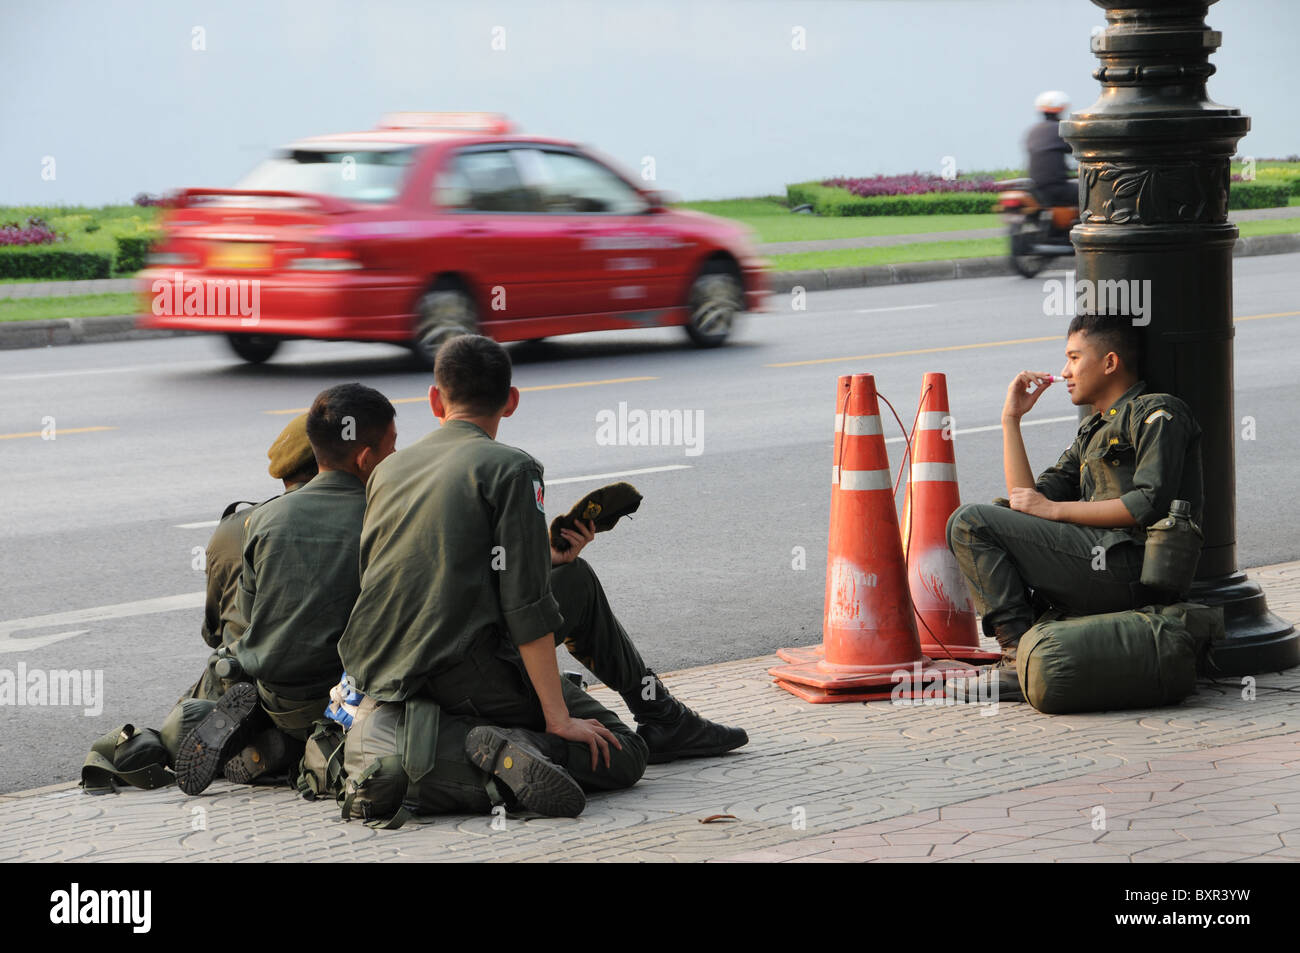 Young Soldiers waiting on a Street in Bangkok. - Stock Image